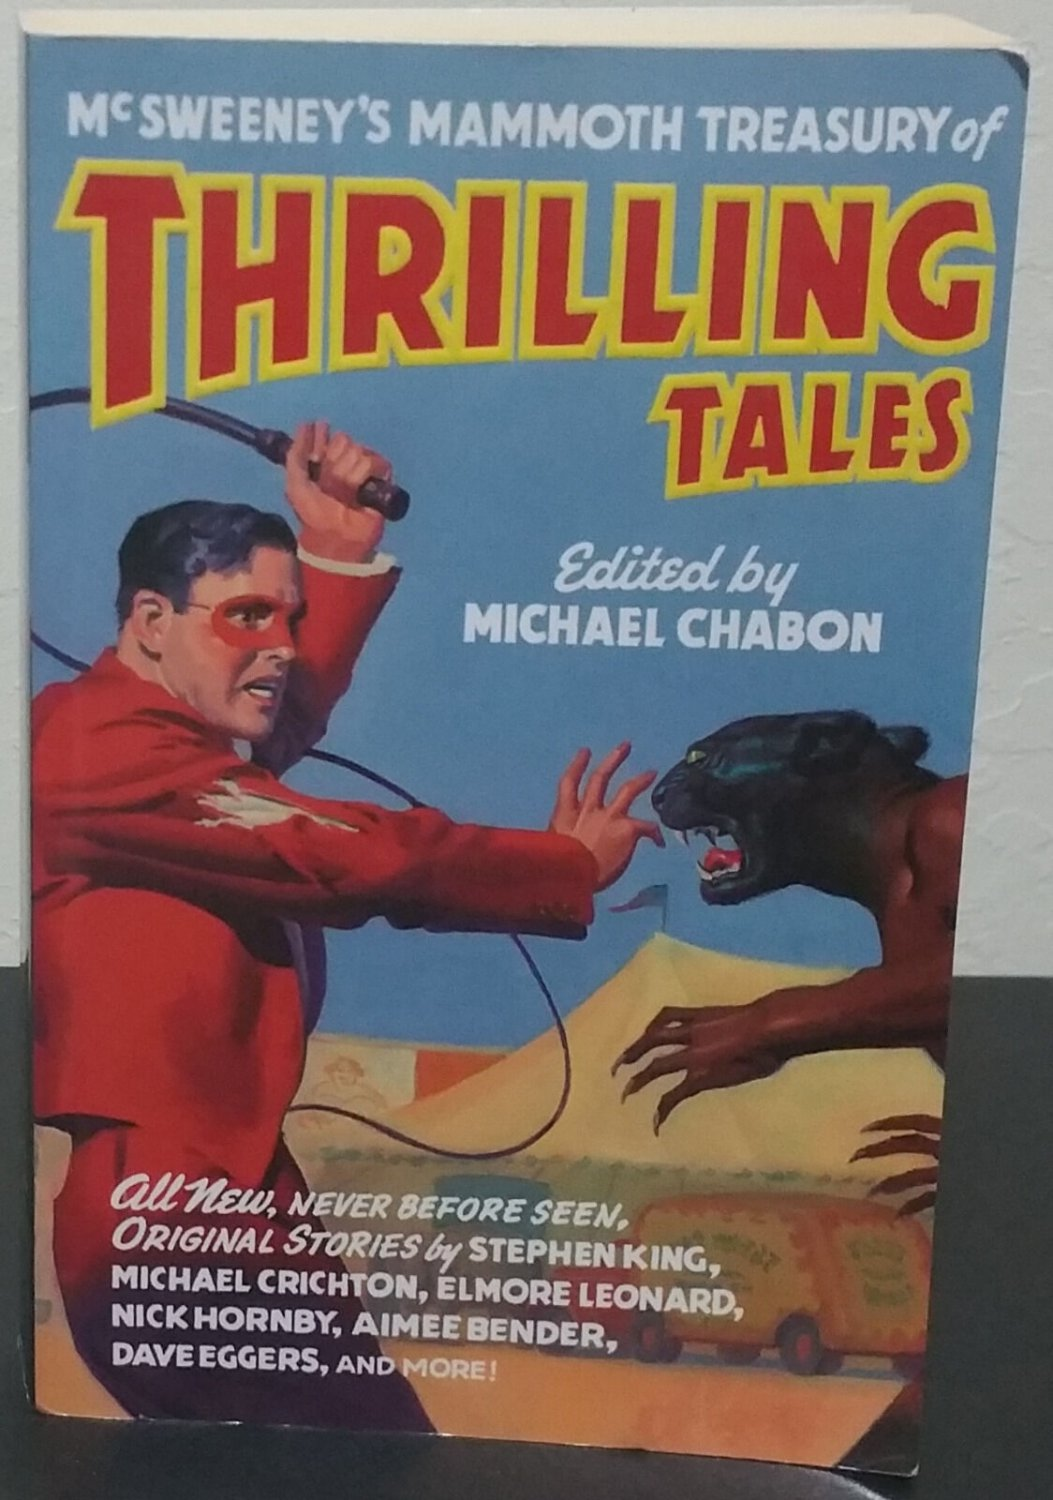 McSWEENEY'S MAMMOTH TREASURY OF THRILLING TALES by Michael Chabon-Signed 1st Pb